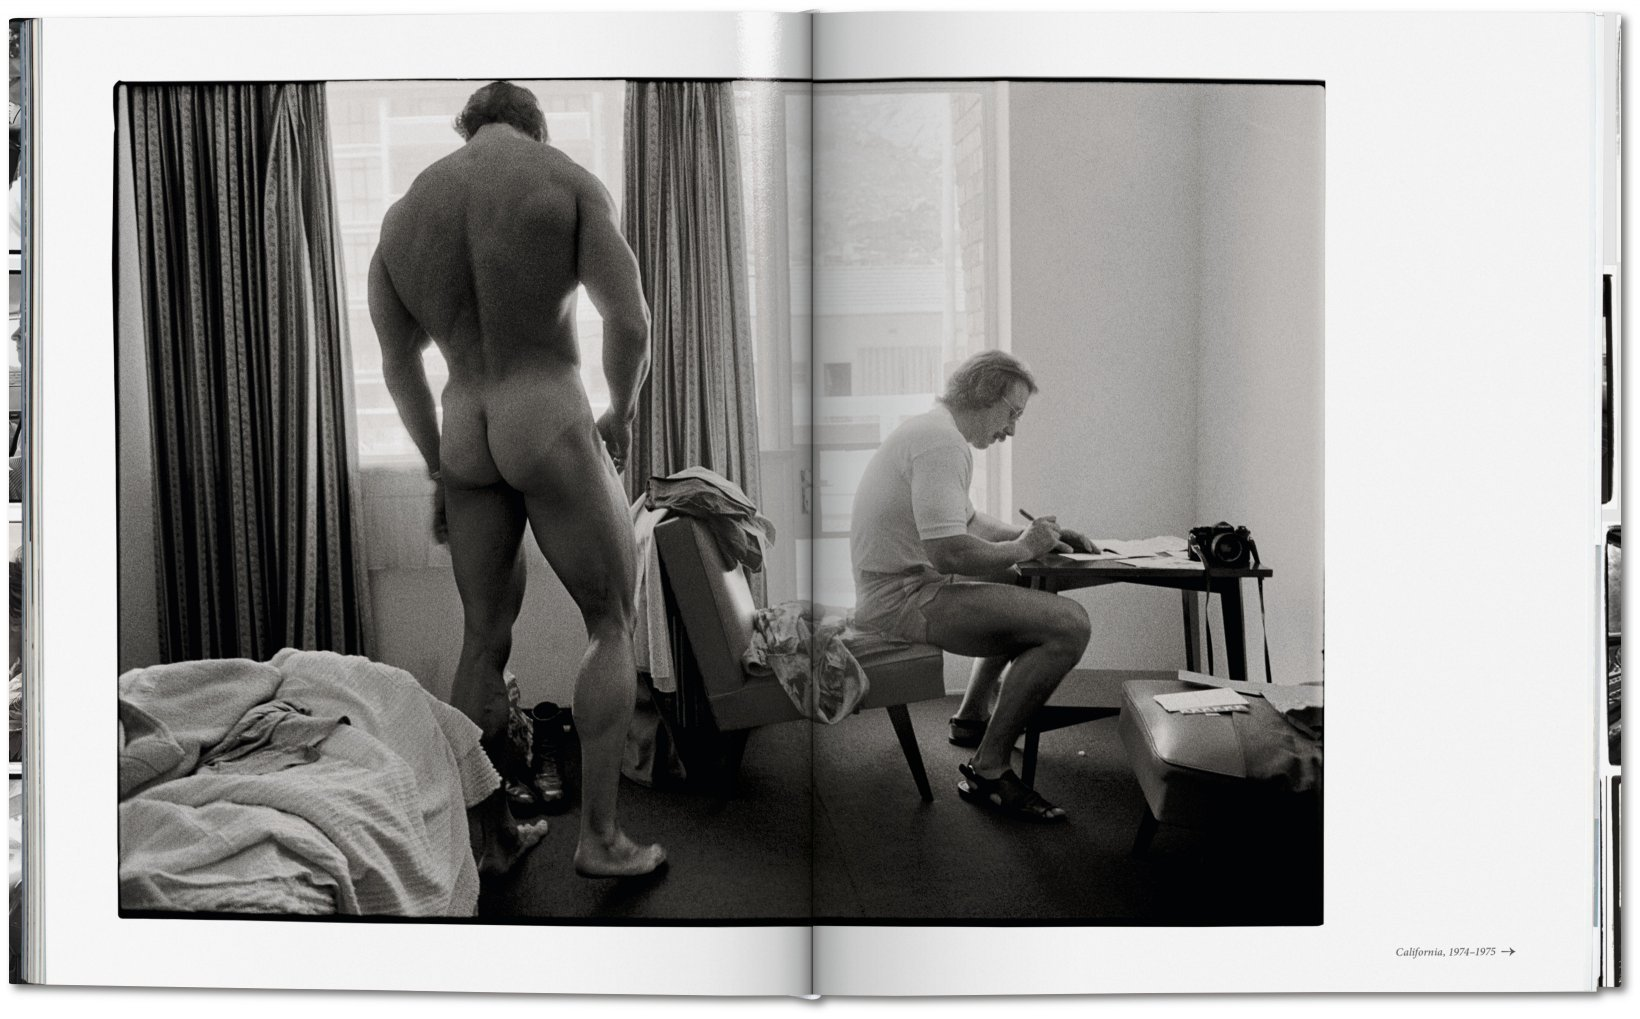 Arnold Schwarzenegger, Mr. Olympia contest, Pretoria, South Africa 1975 | aus: Annie Leibovitz: The Early Years, 1970–1983